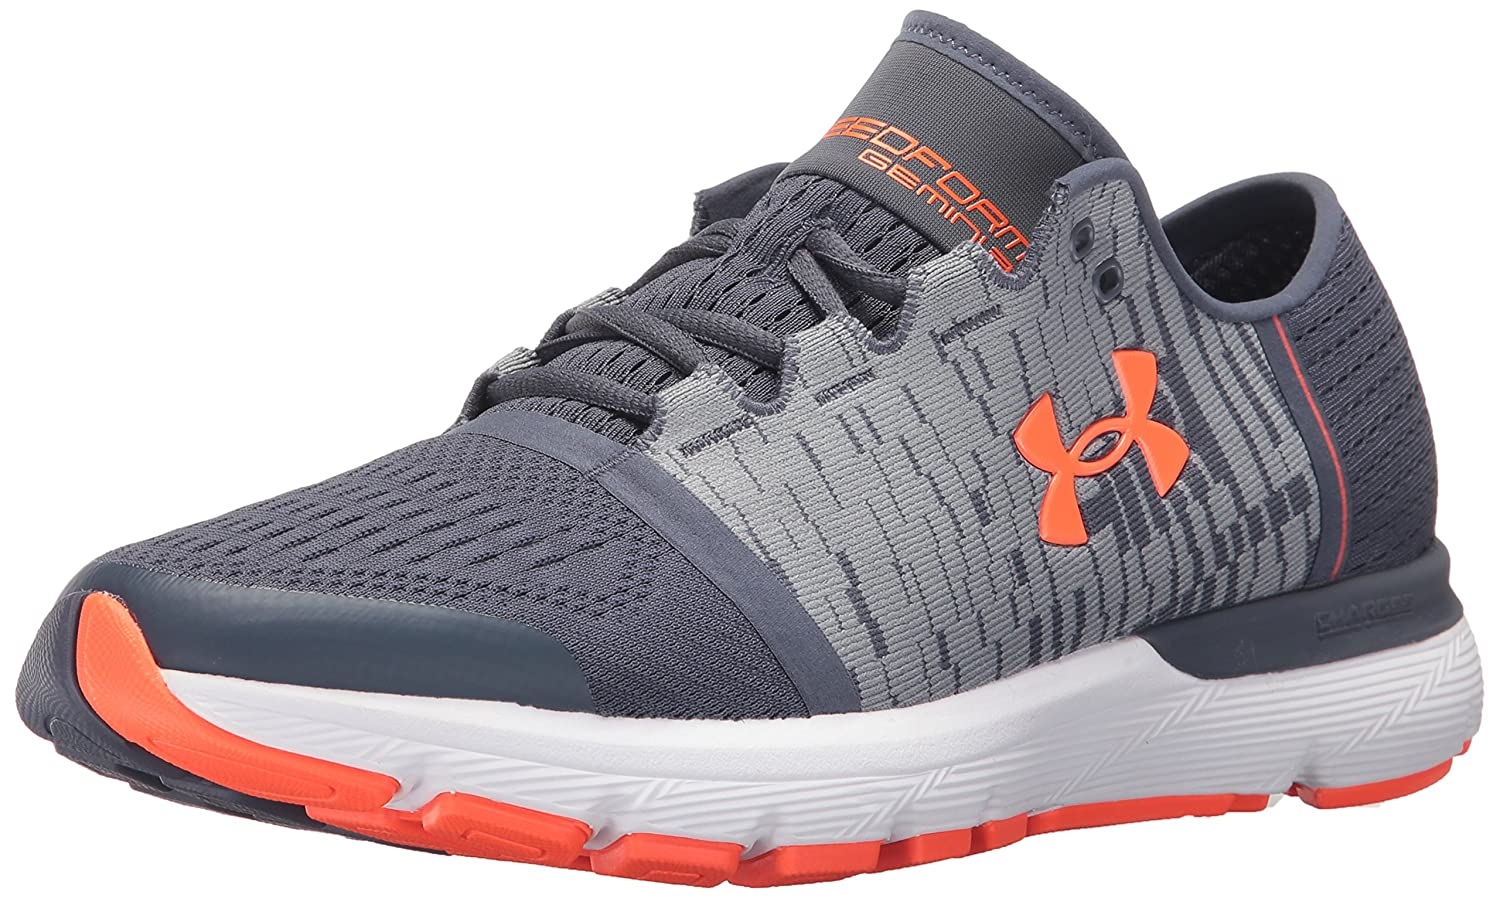 736bf9a2b Under Armour Men s Running Shoes  Buy Online at Low Prices in India -  Amazon.in